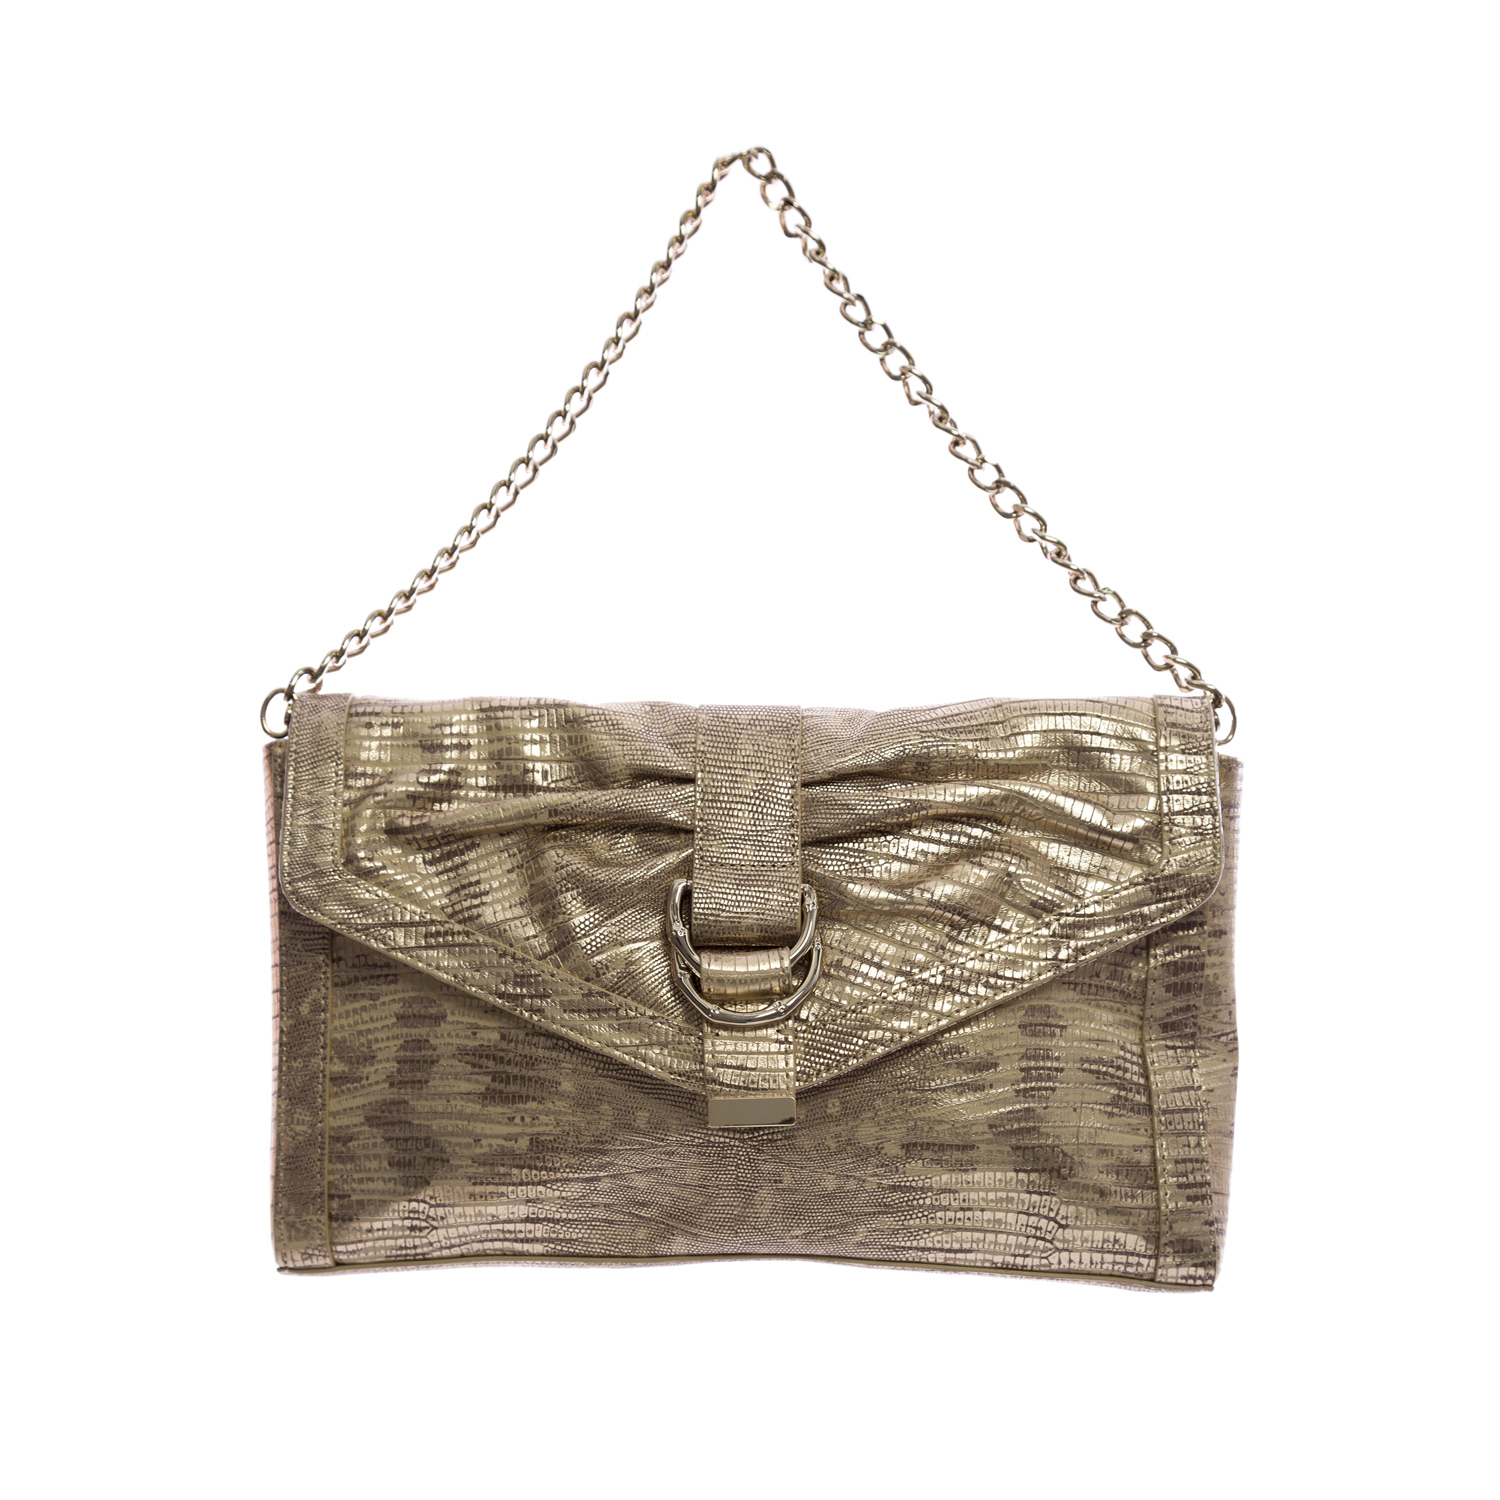 Elaine Turner Women's Snake Embossed Leather Clutch Bag One Size Gold